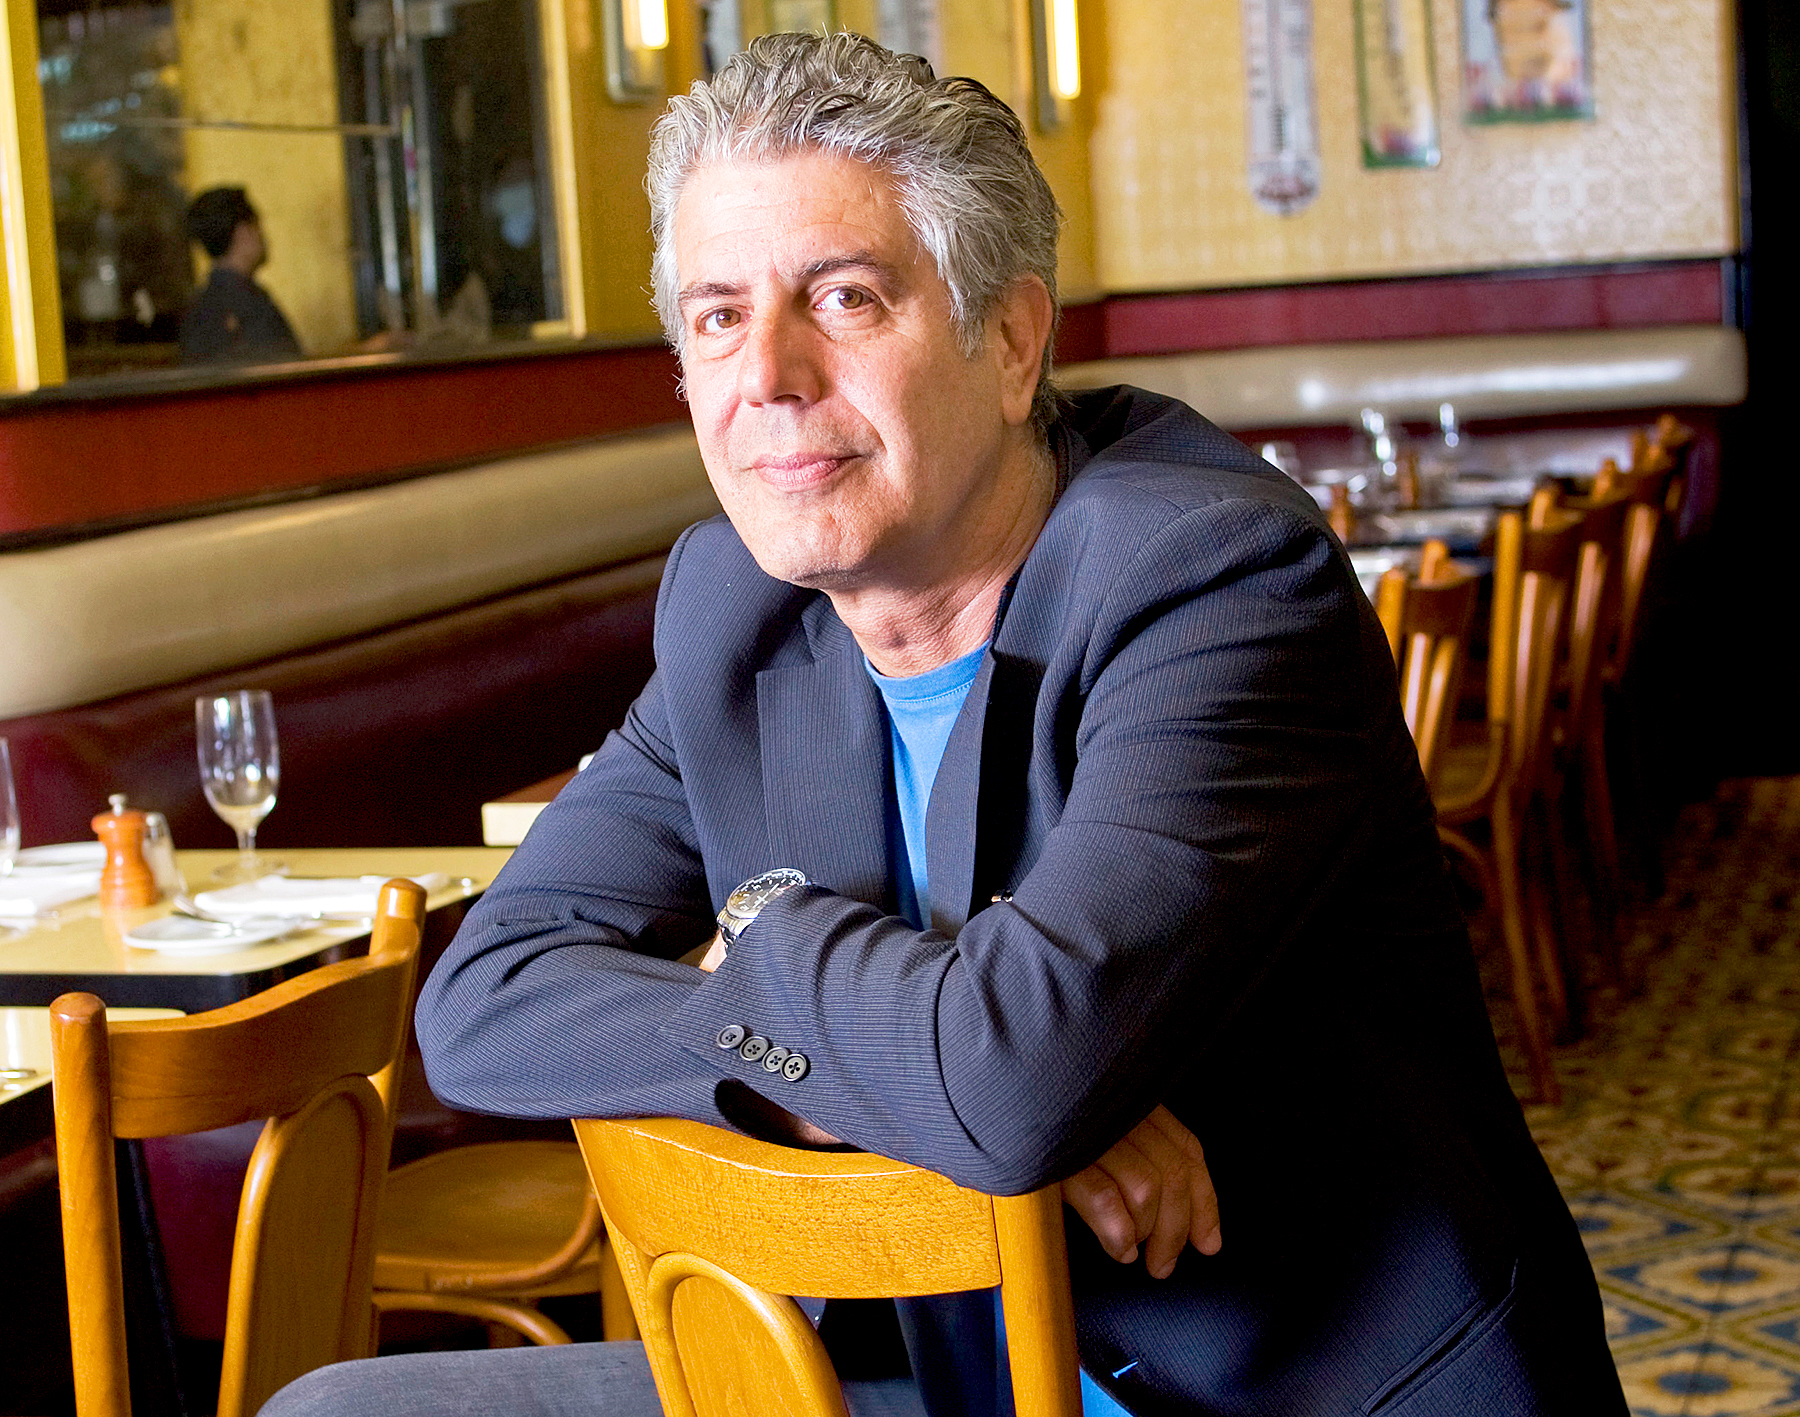 Anthony Bourdain worth only $1.2M at time of death, will reveals